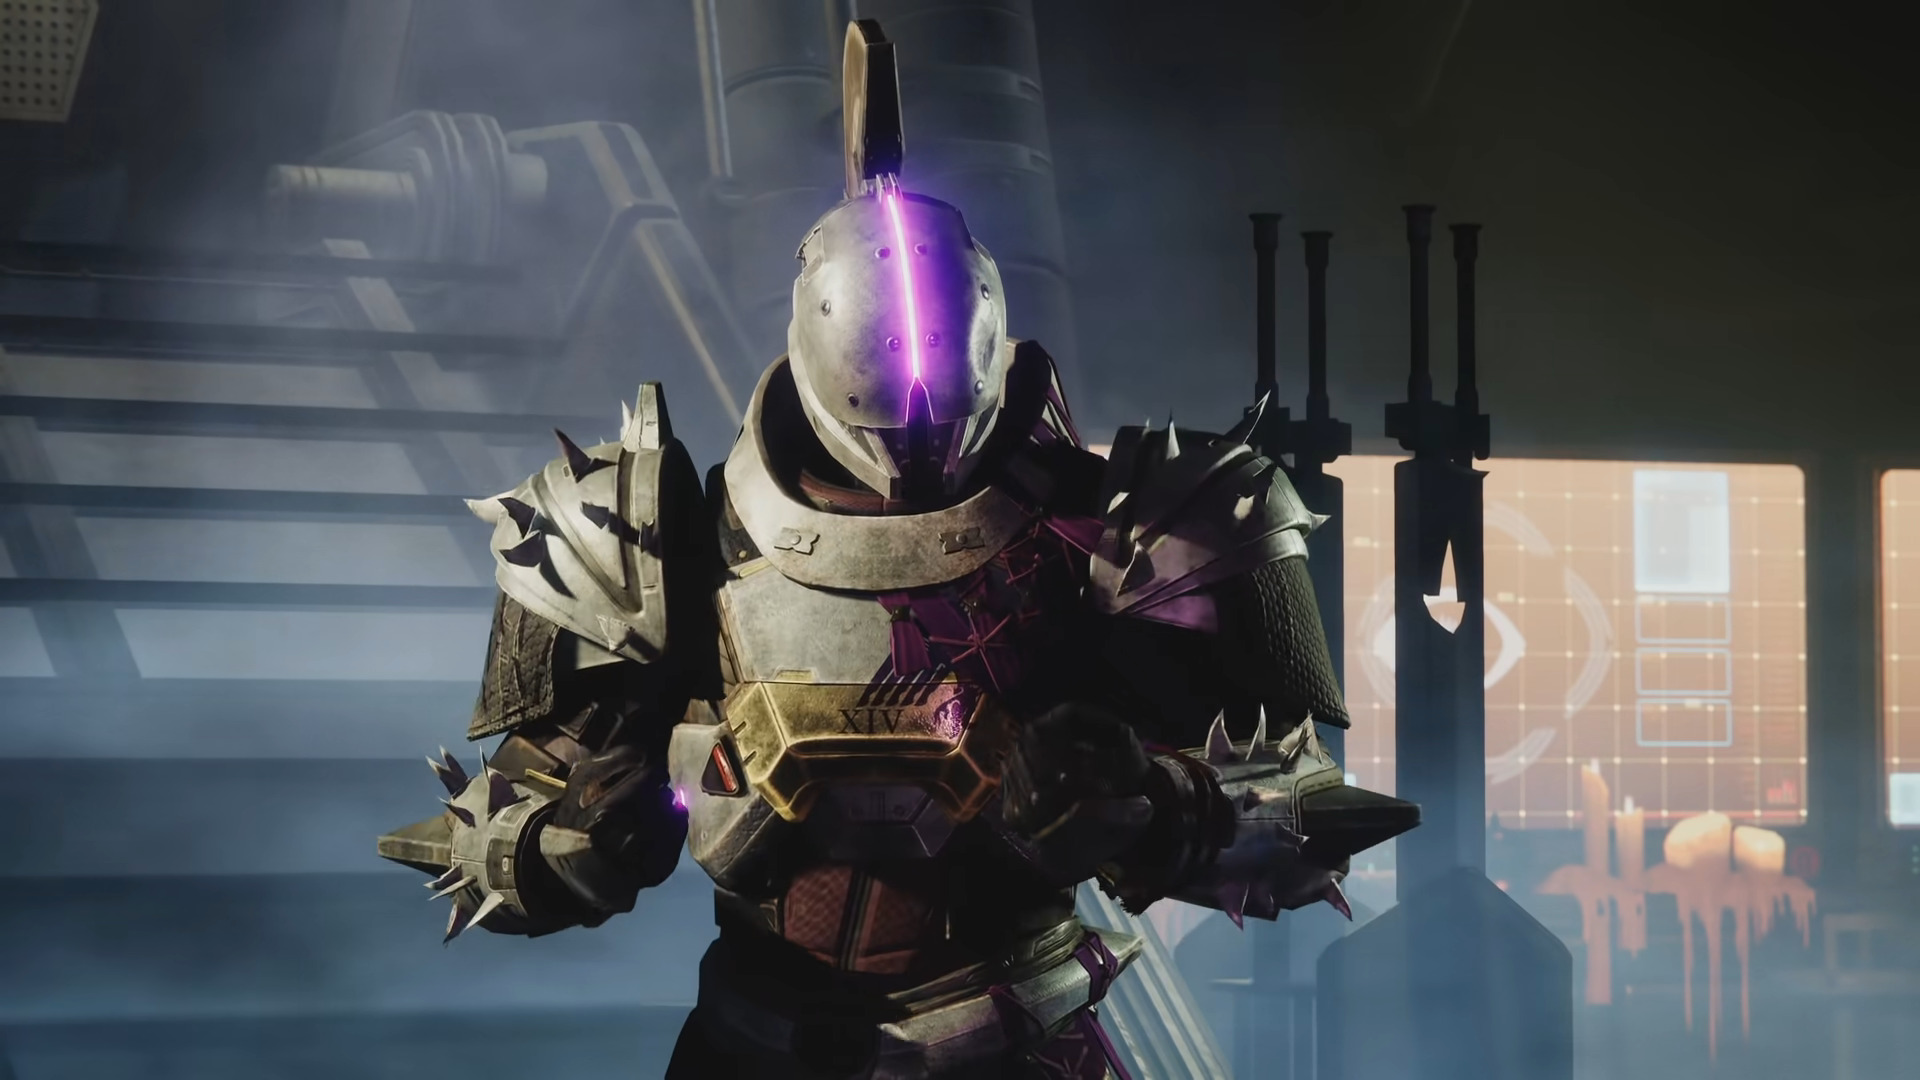 Destiny 2 Weekly Reset: Reset Information For The Week Of Christmas 12/22-12/28